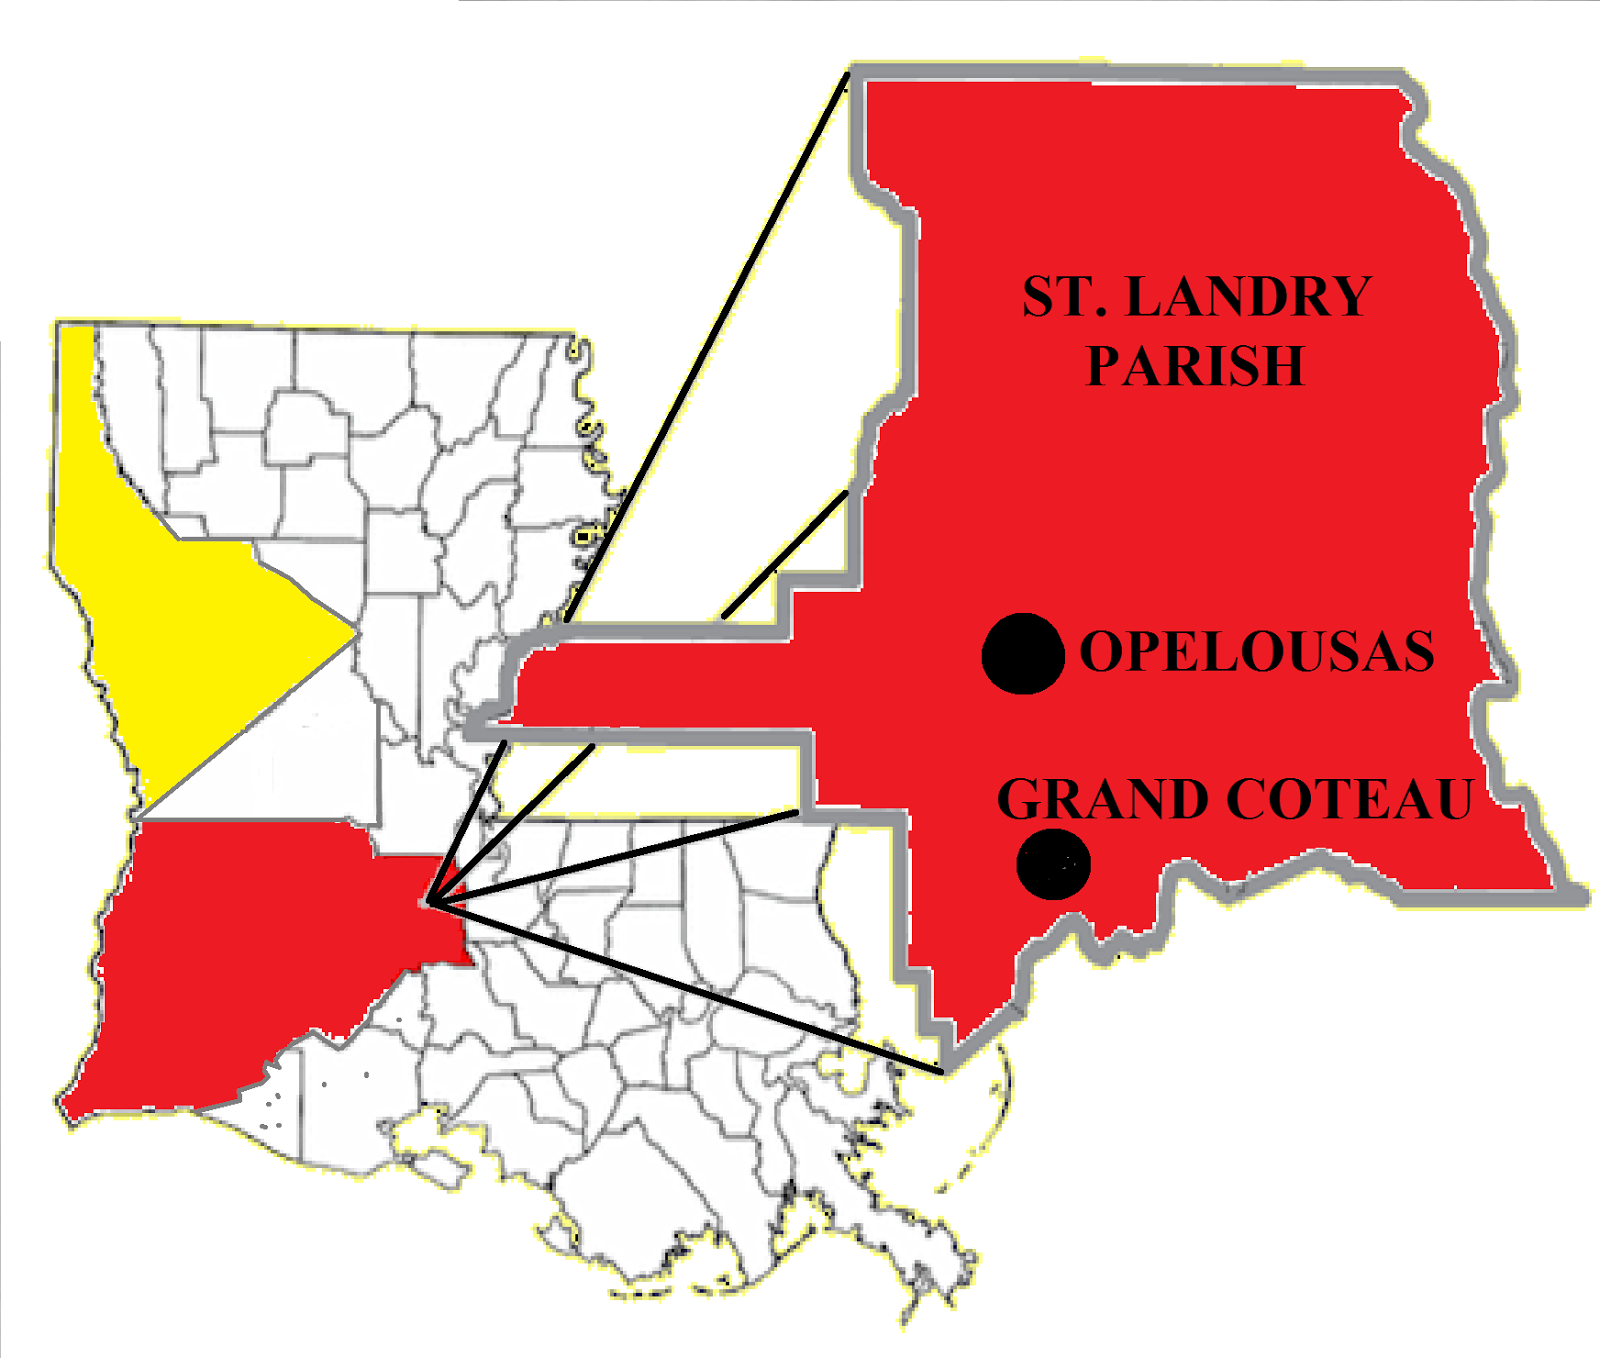 st landry parish boundaries in 1810 most of the other parishes on the map show current boundaries the enhancement is the western portion of st landry